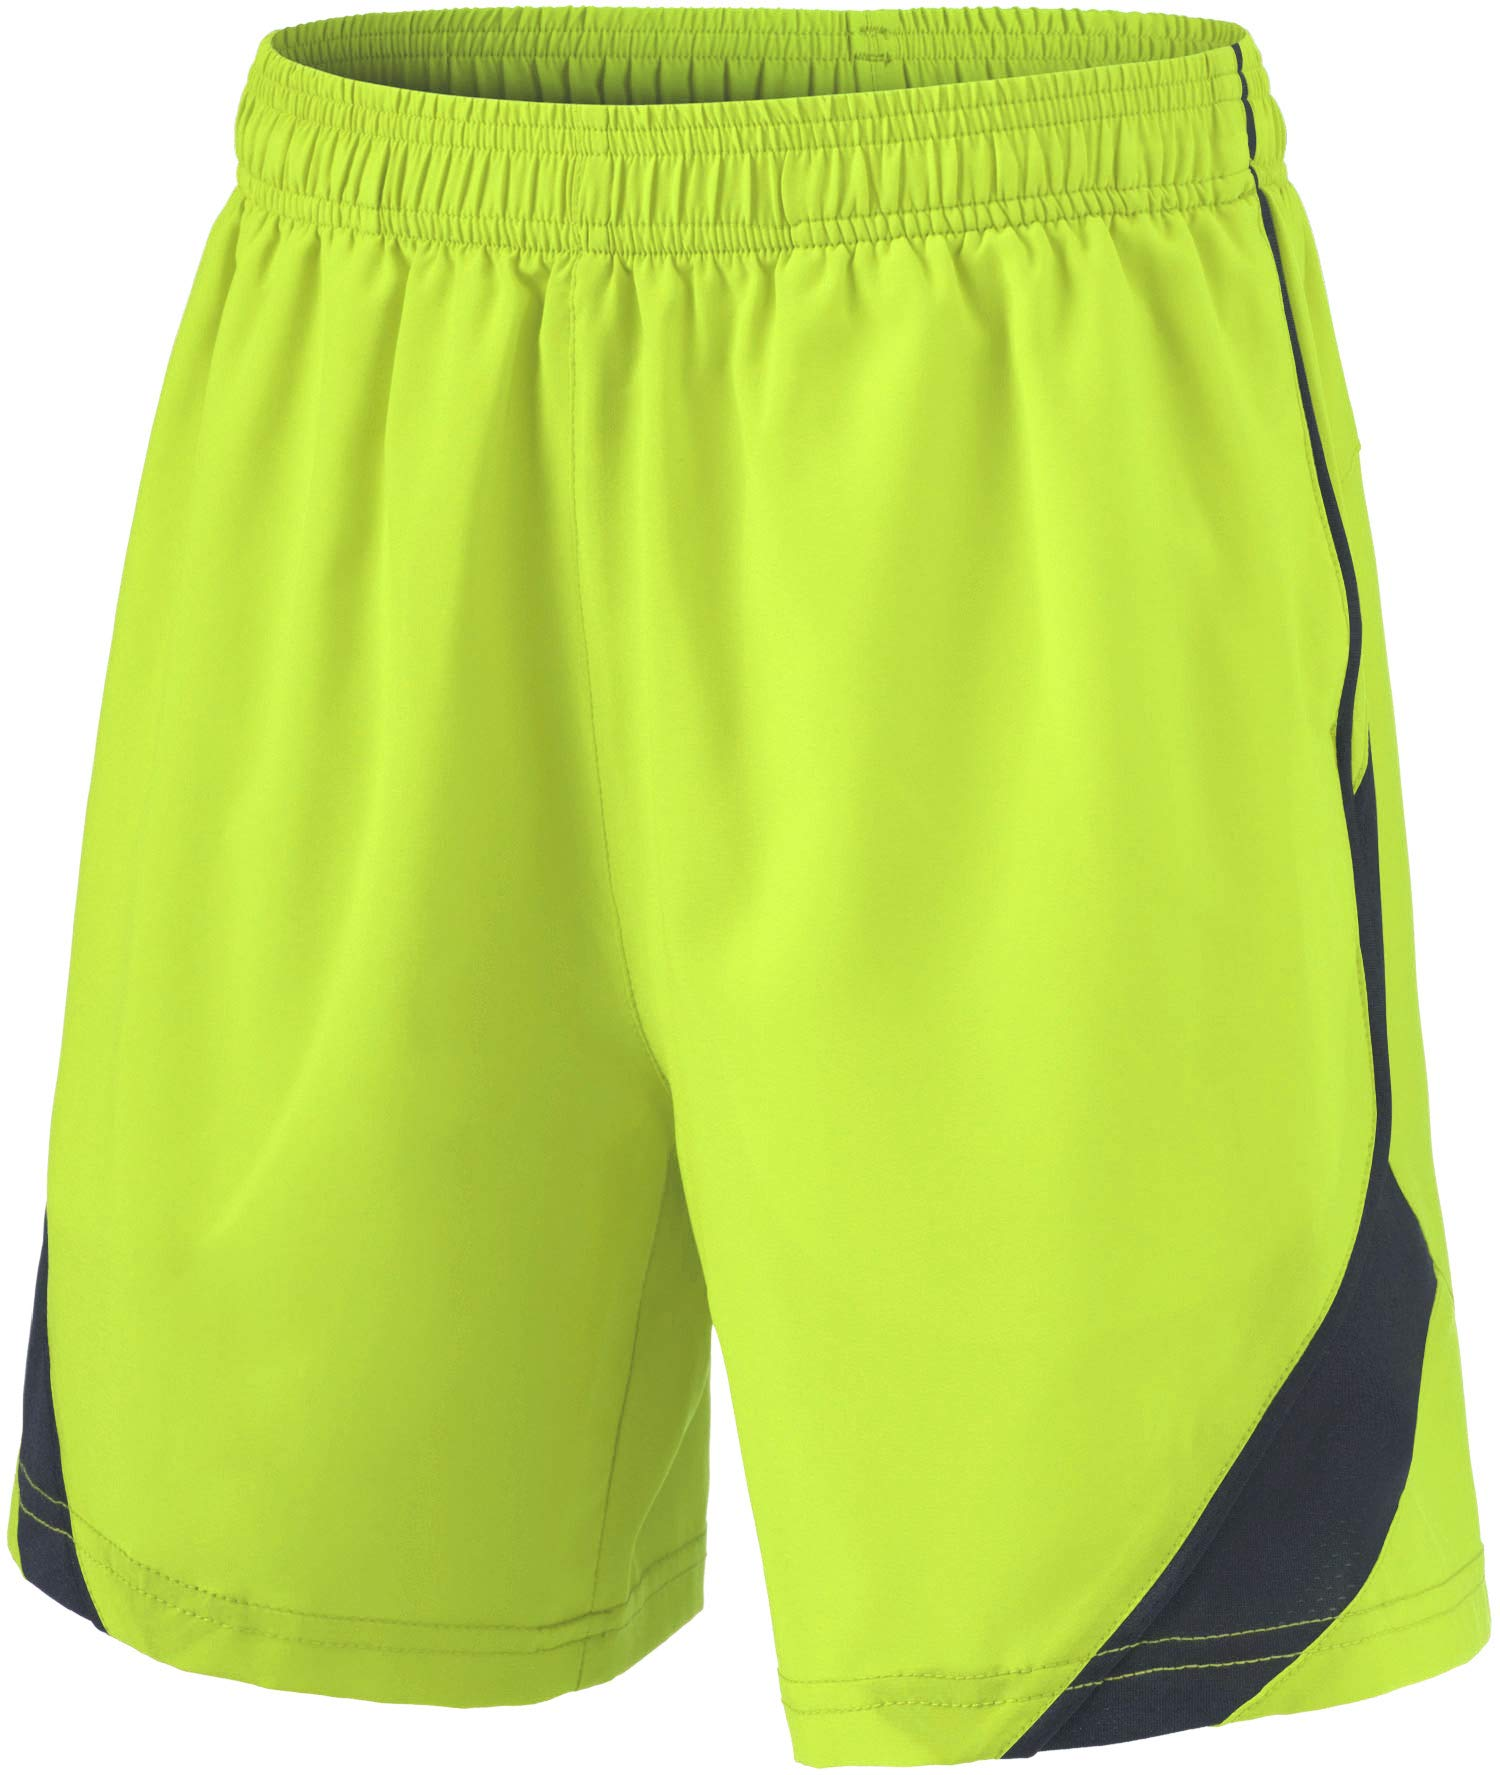 TSLA Boy's Active Shorts Sports Performance Youth HyperDri II w Pockets, Stretch Pace(kbh76) - Neon, Youth X-Large by TSLA